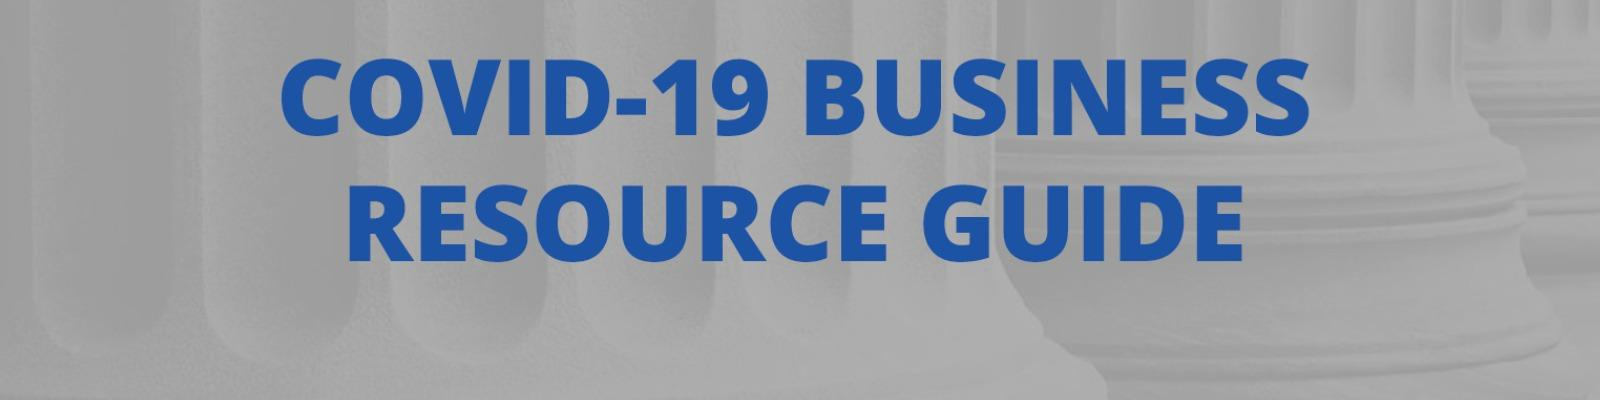 COVID-19 Business Resource Guide for Hampton Roads Cover